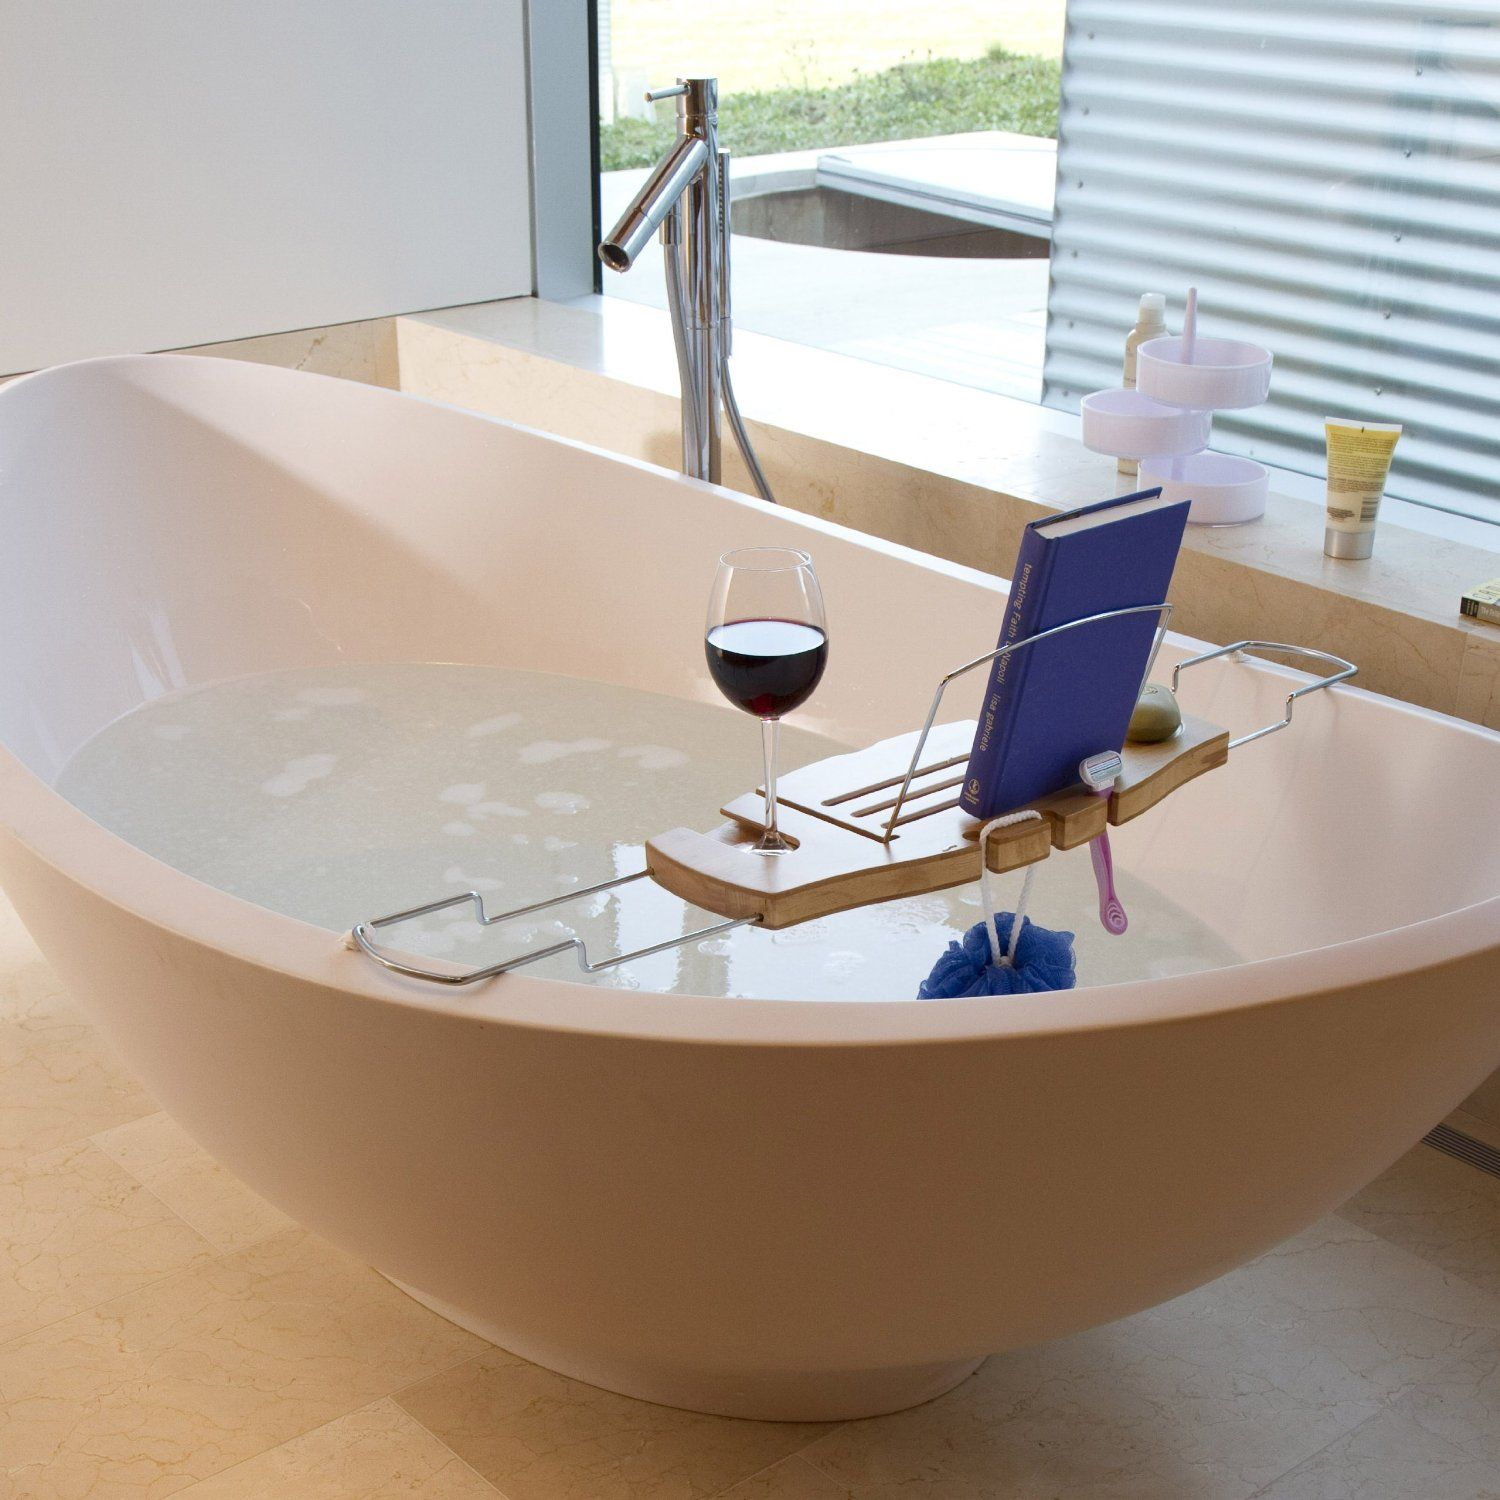 books uncorked literary swag for wine lovers bath caddy bath